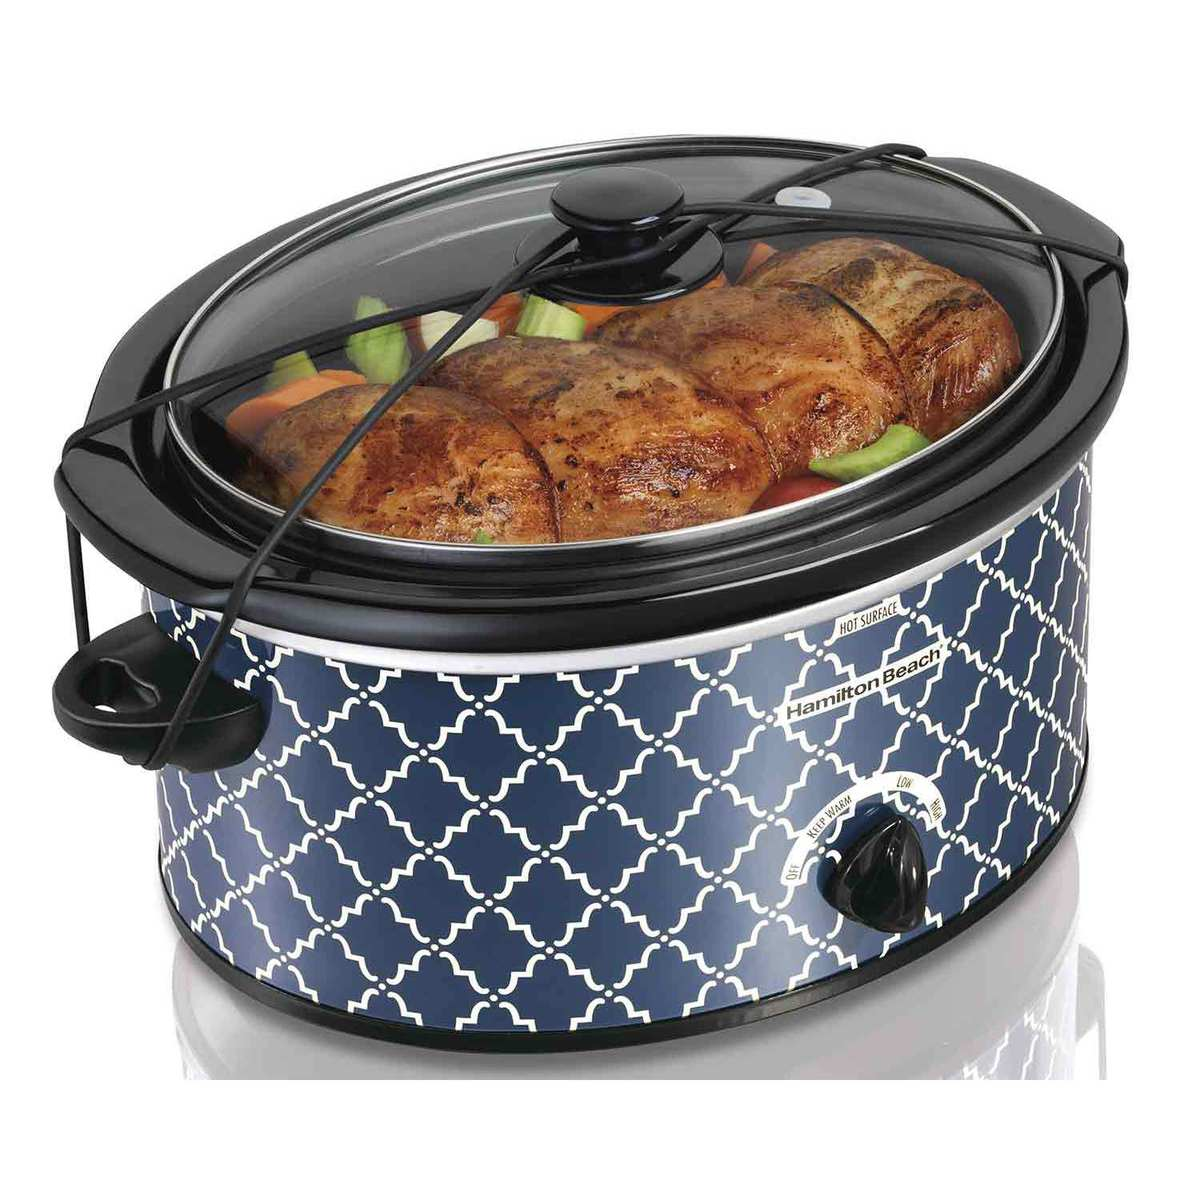 5 Quart Portable Slow Cooker (33359)